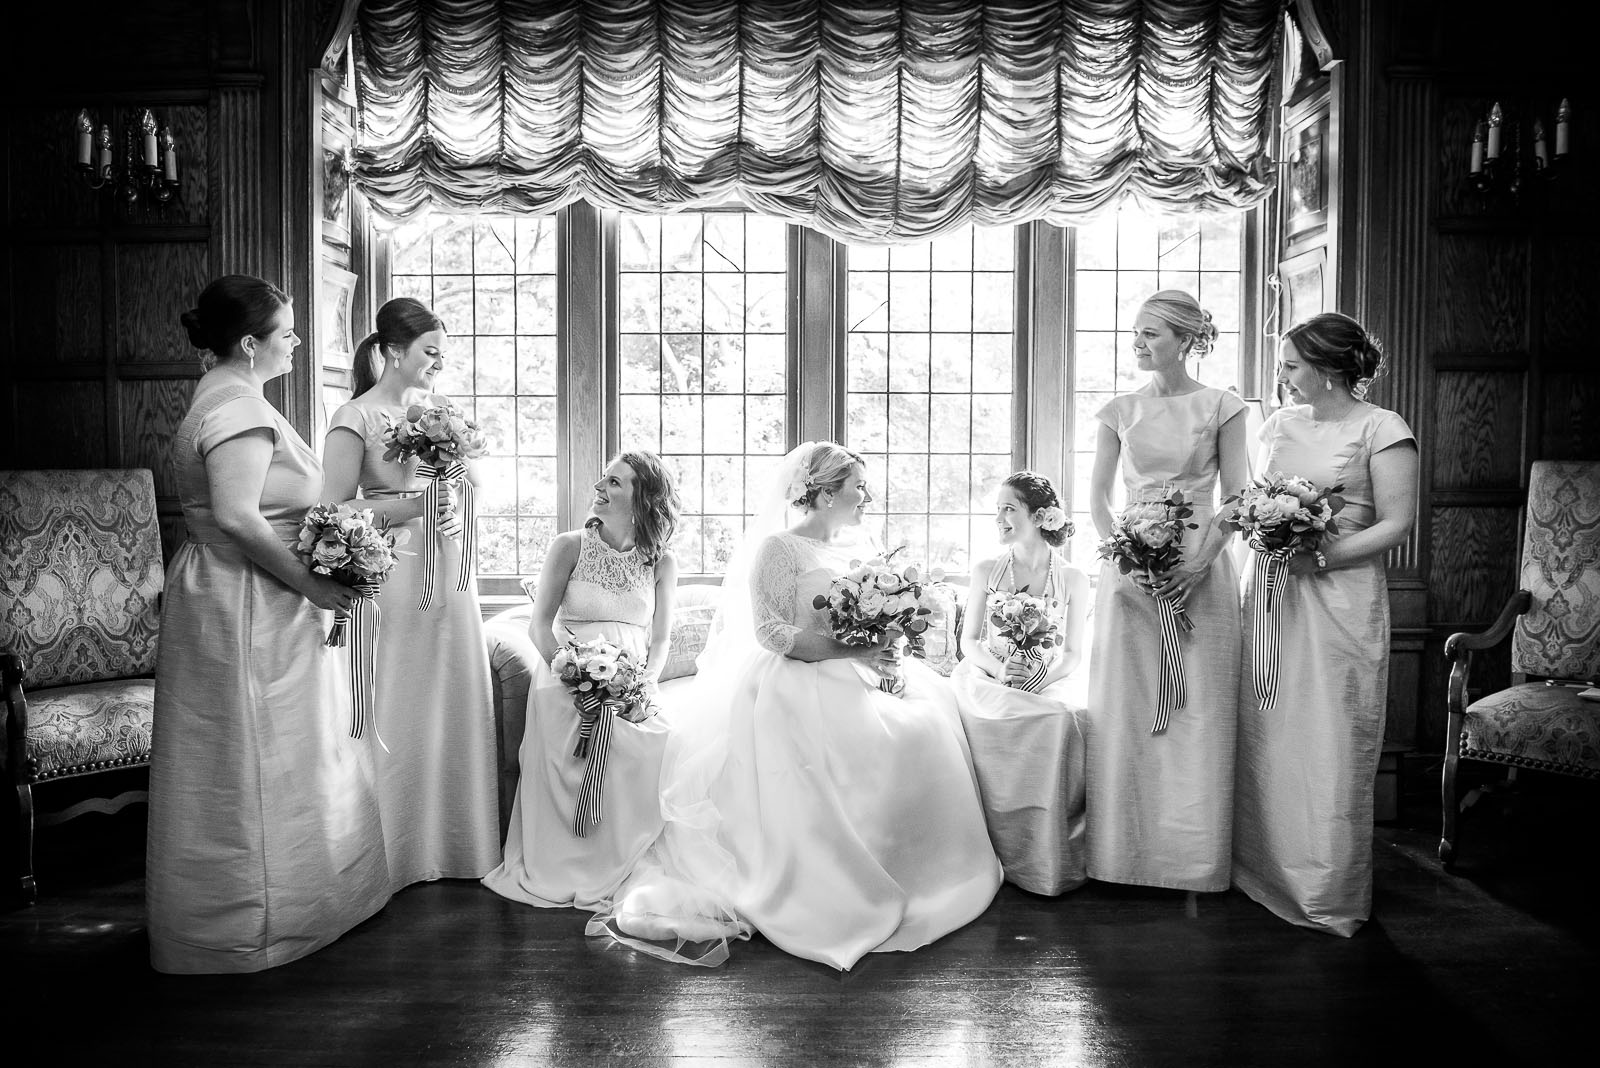 eric_and_christy_photographers_blog_wedding_emilypeter-28